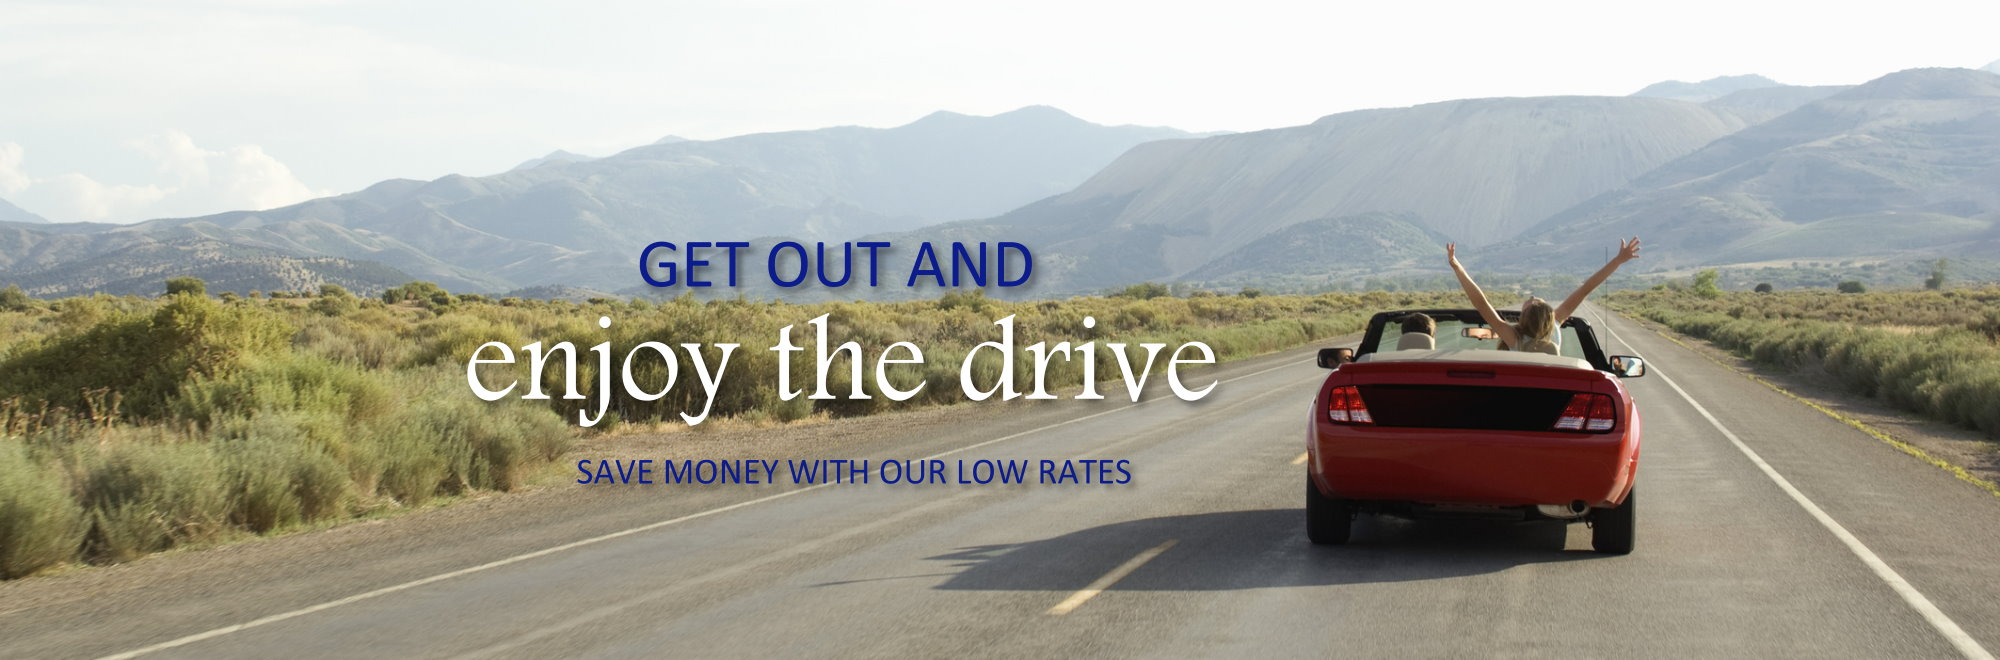 enjoy-the-drive-low-rates3